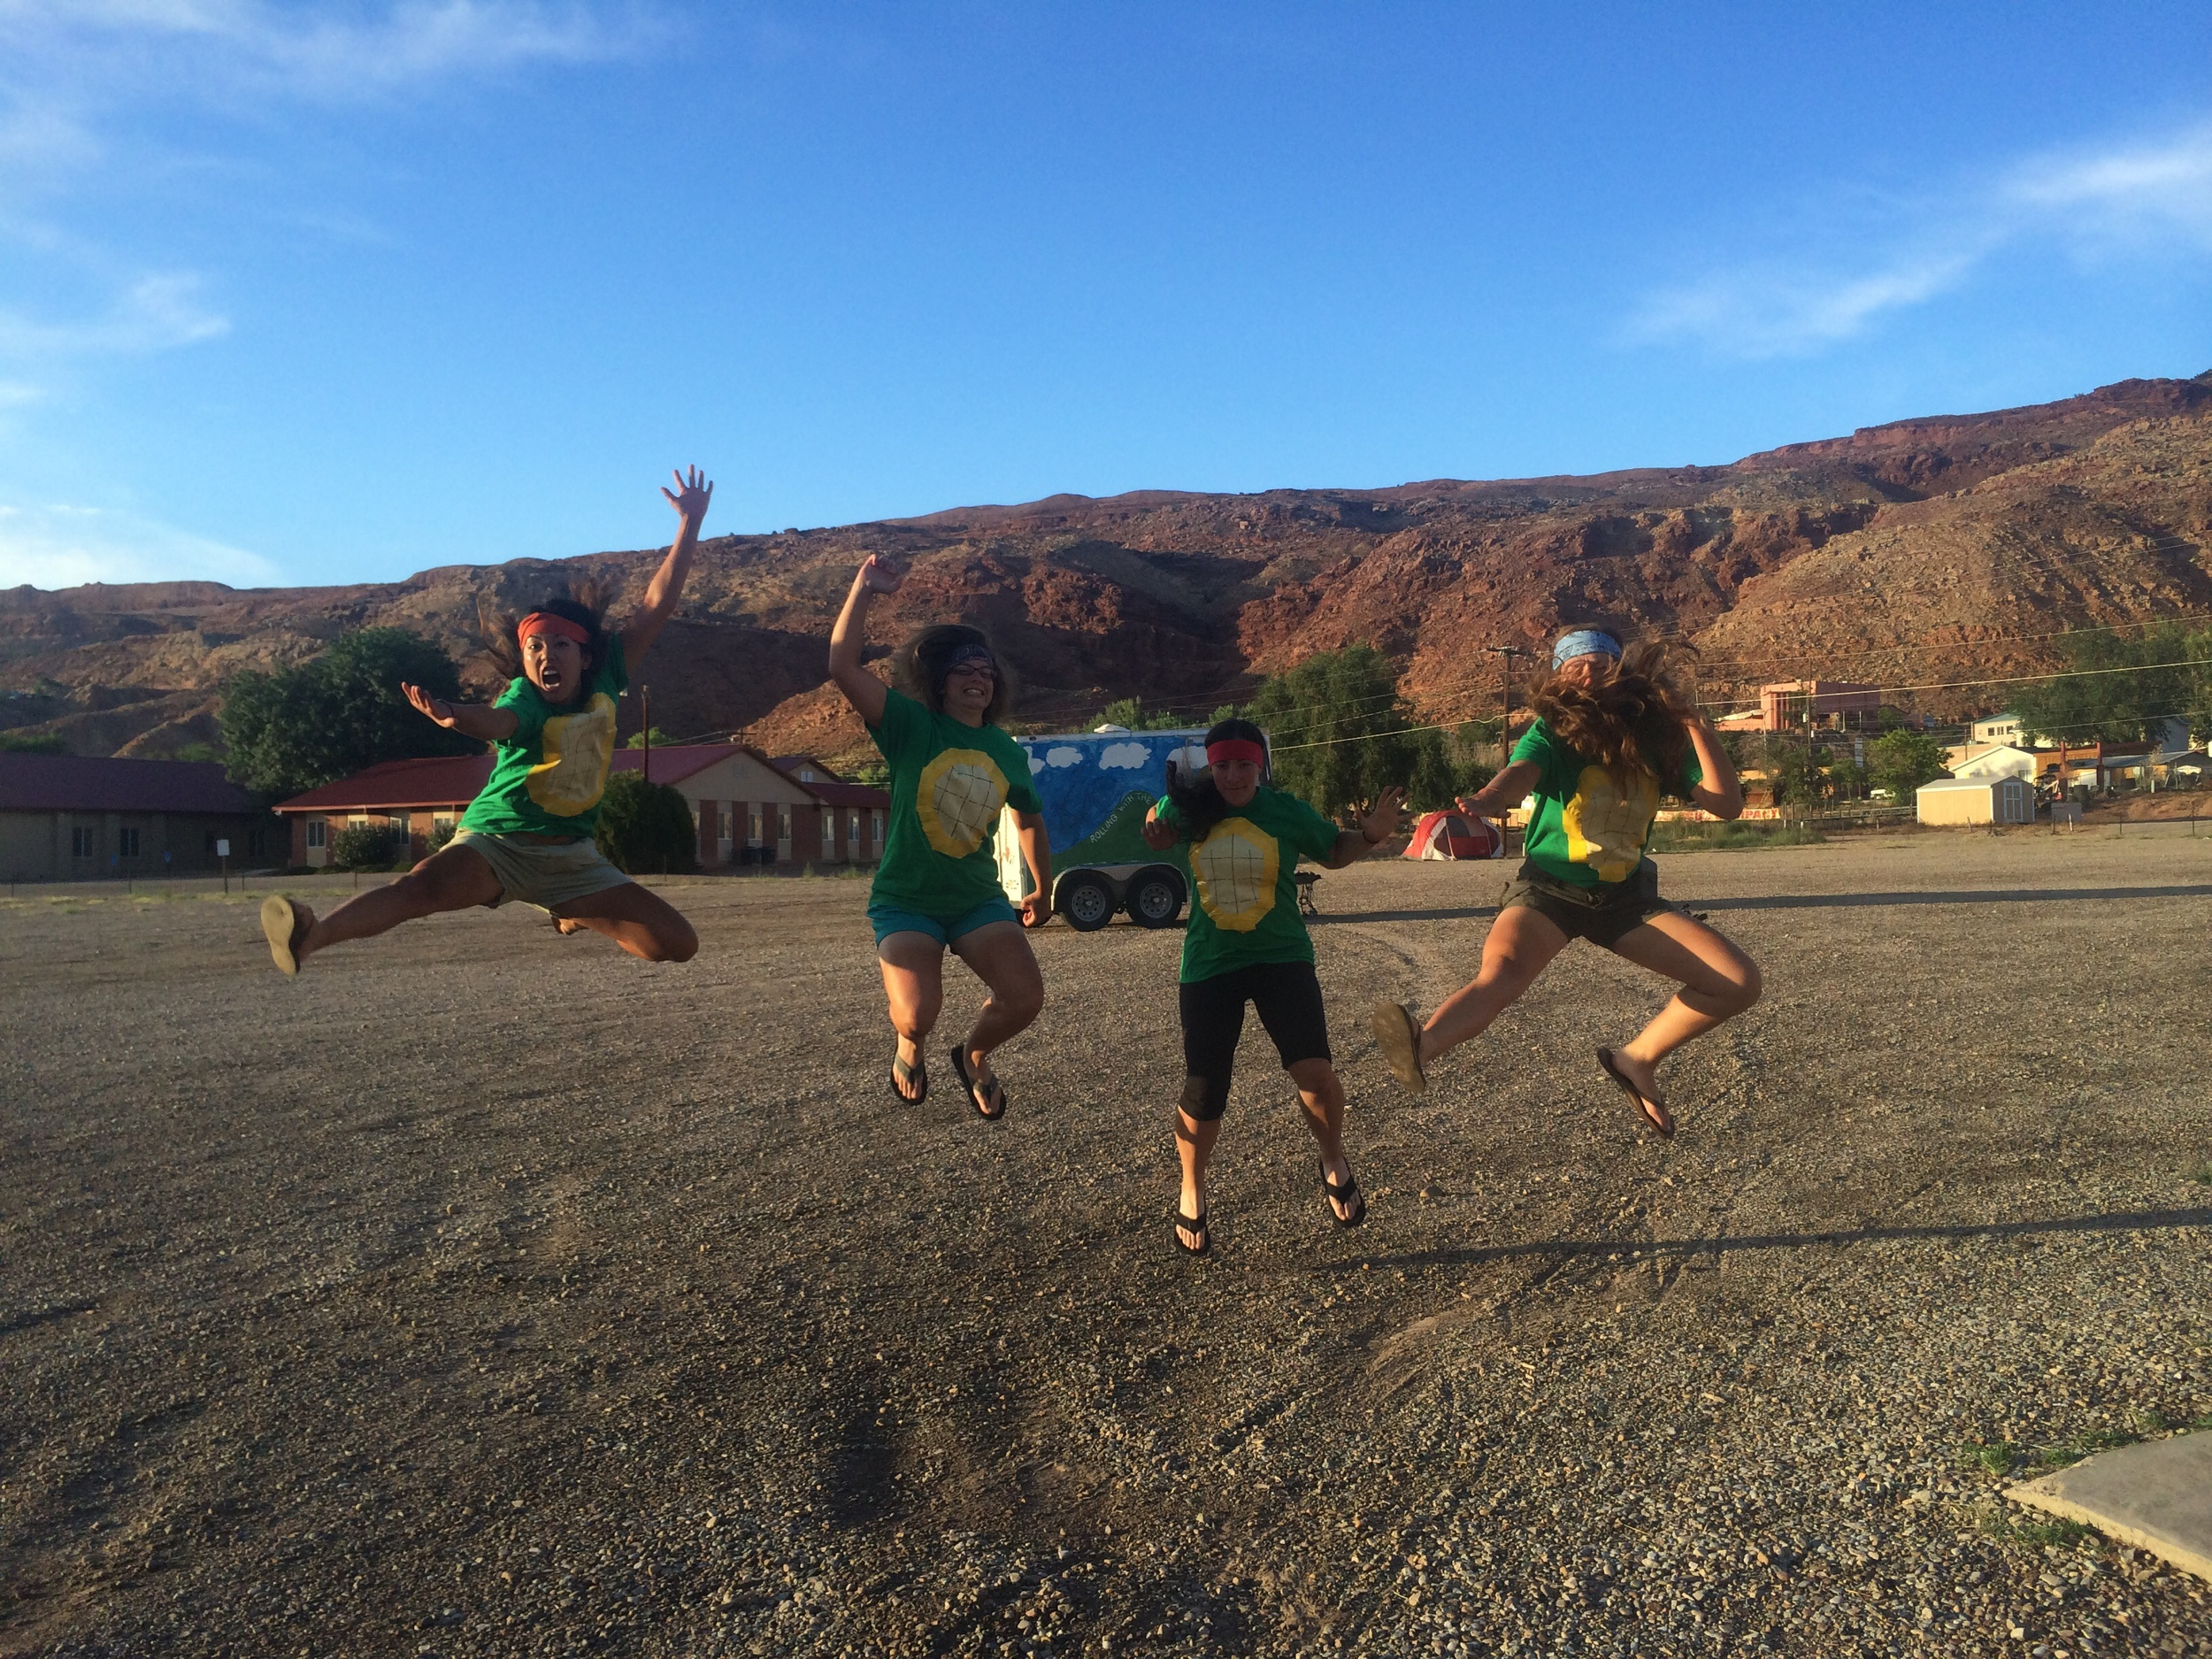 For our Bike and  Build prom in Moab, my dates Rachel, Mara, Emily and I dressed up as the Teenage Mutant Ninja Turtles. Cowabunga!